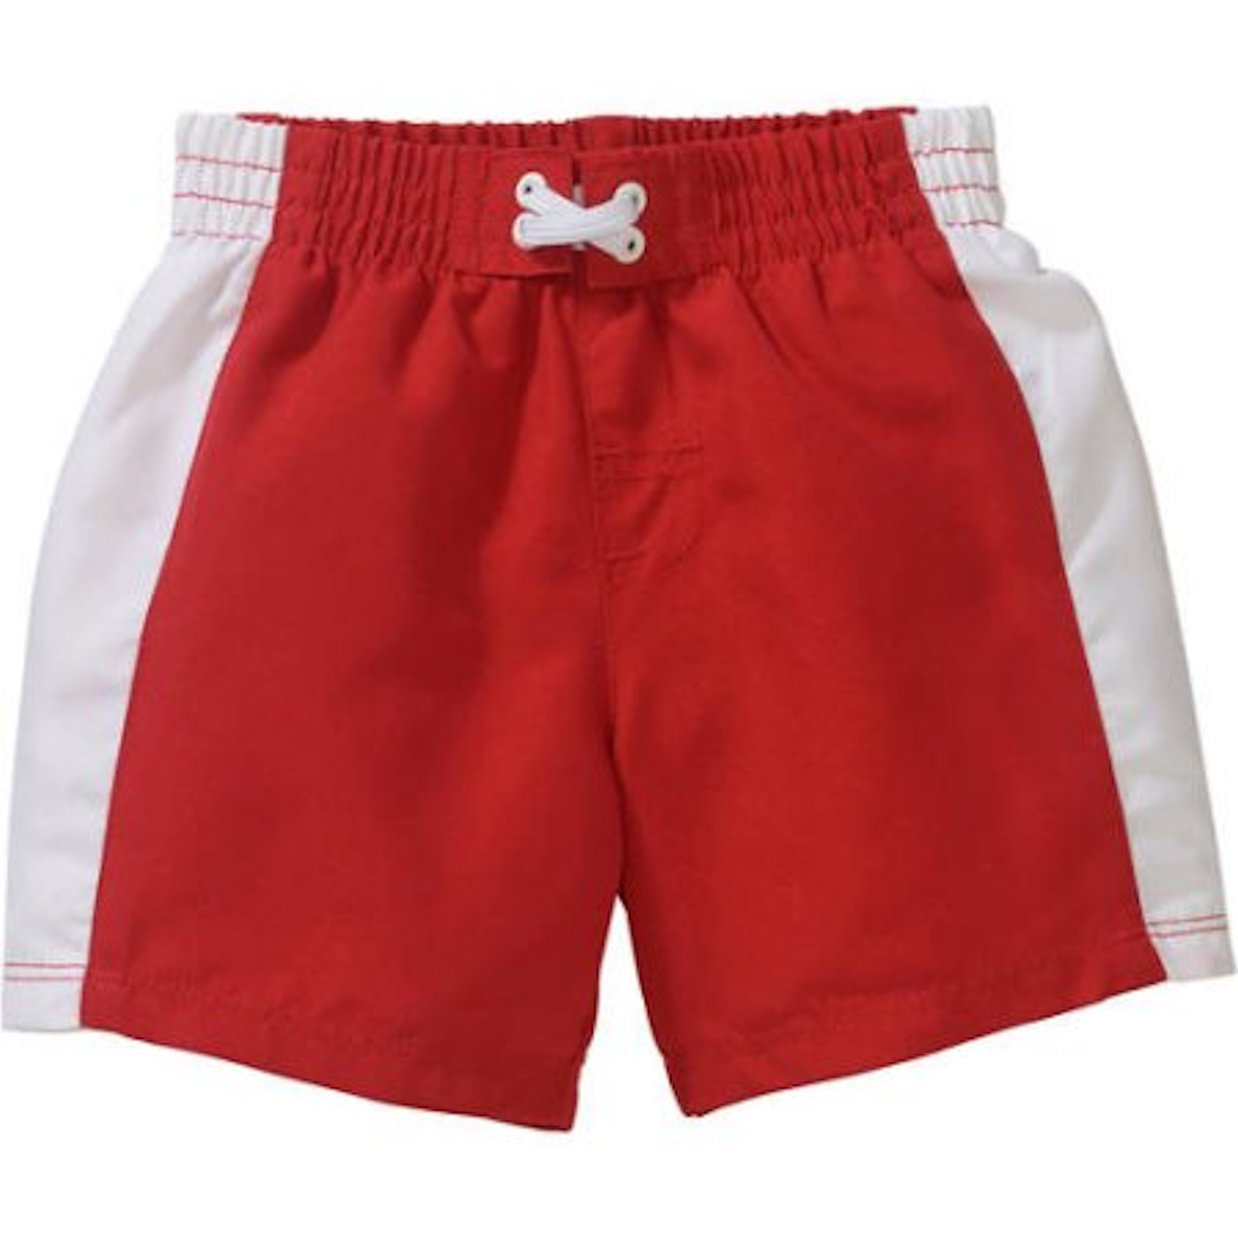 0d8466afbb Amazon.com: Baby Infant Boys OP Red White Striped Swim Trunks Shorts (12  Months): Clothing